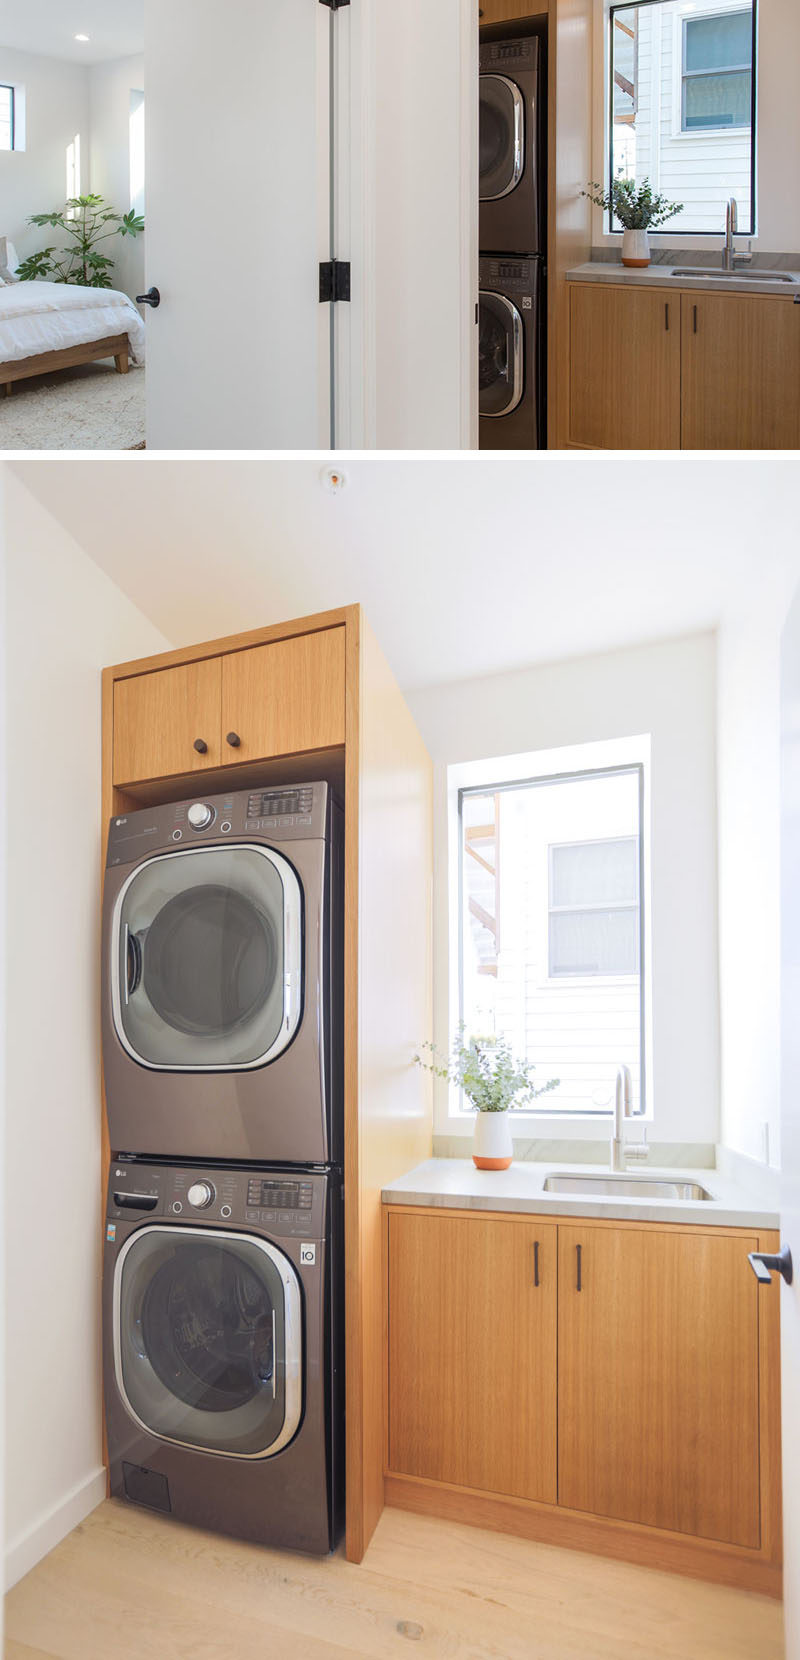 Tucked away in a small room near the bedrooms in this modern house is the laundry room. Custom cabinetry has been used to frame the appliances and create storage.